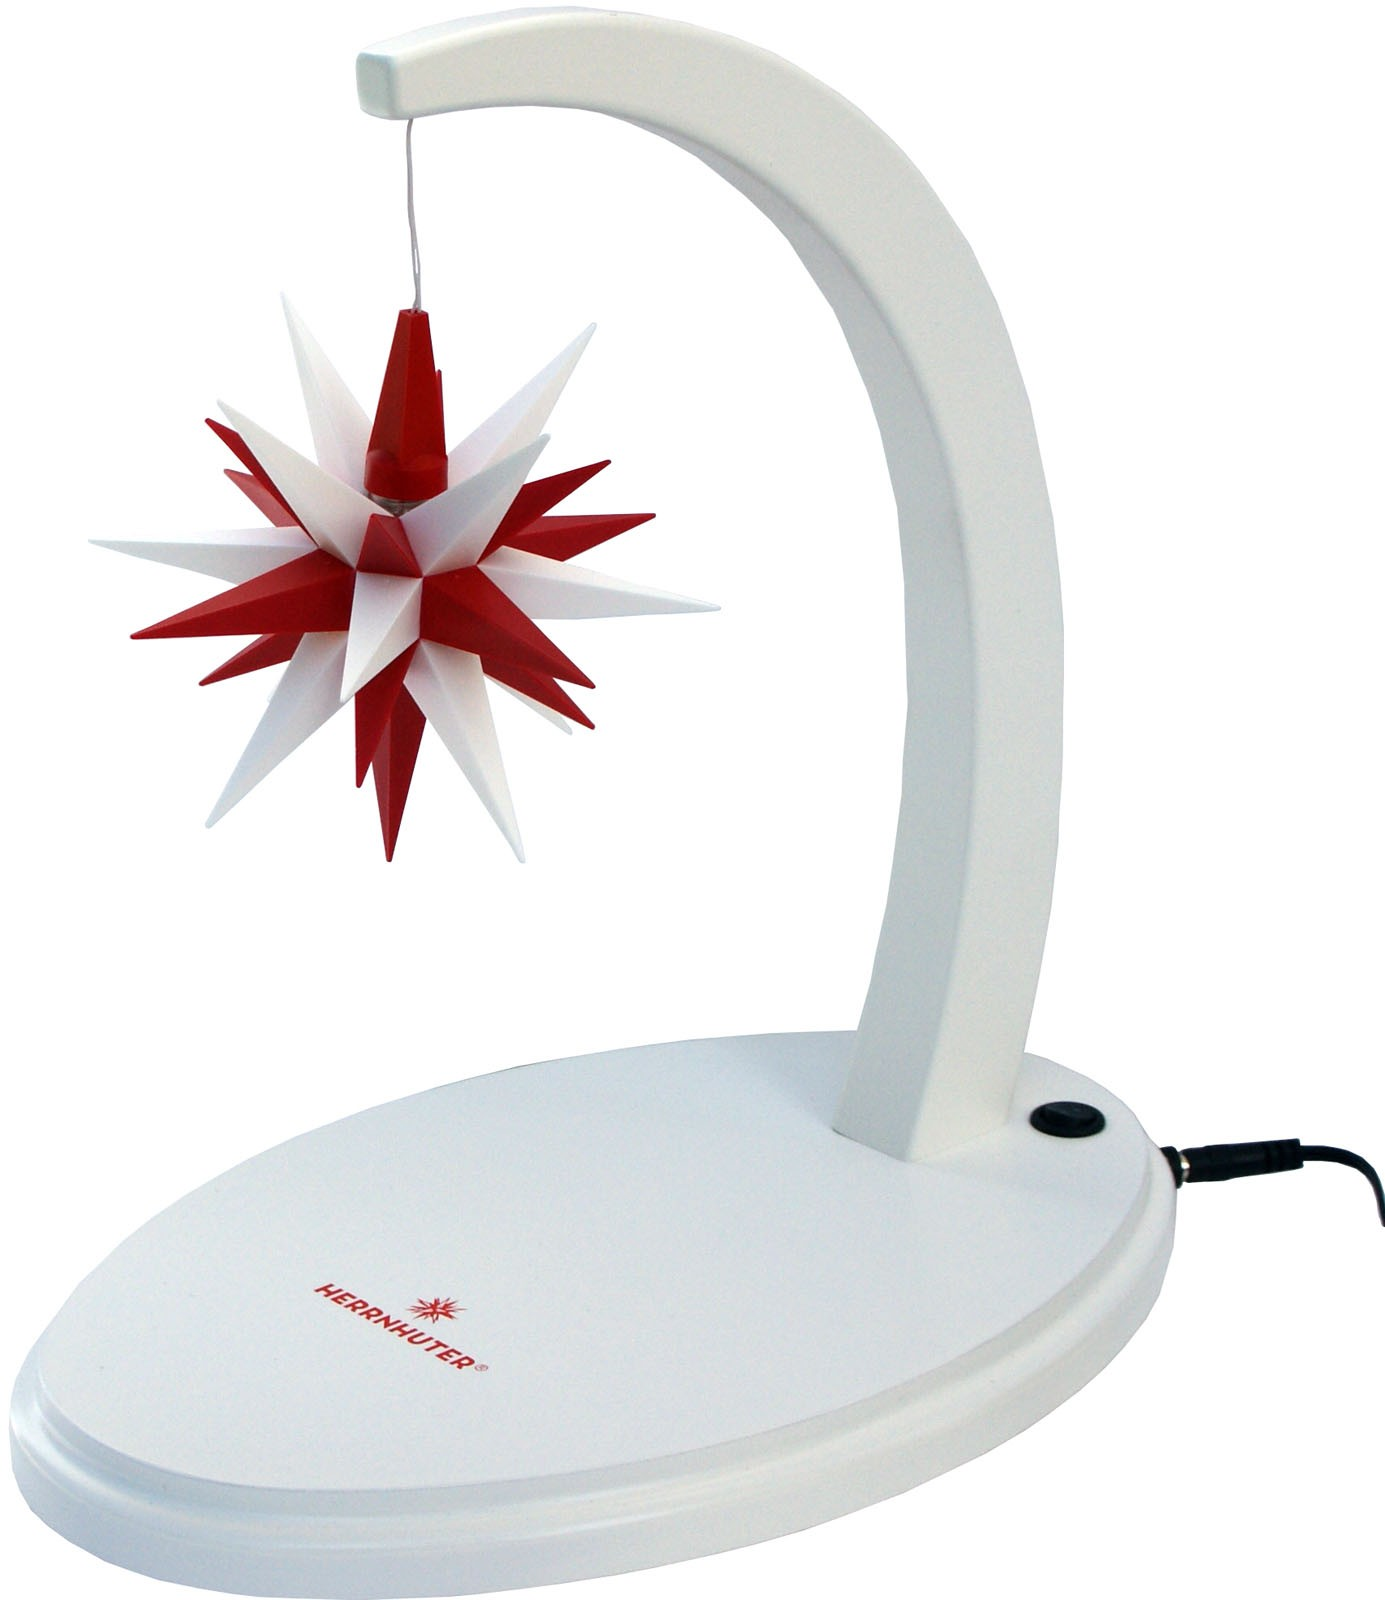 Herrnhuter starbow A1e, white/red